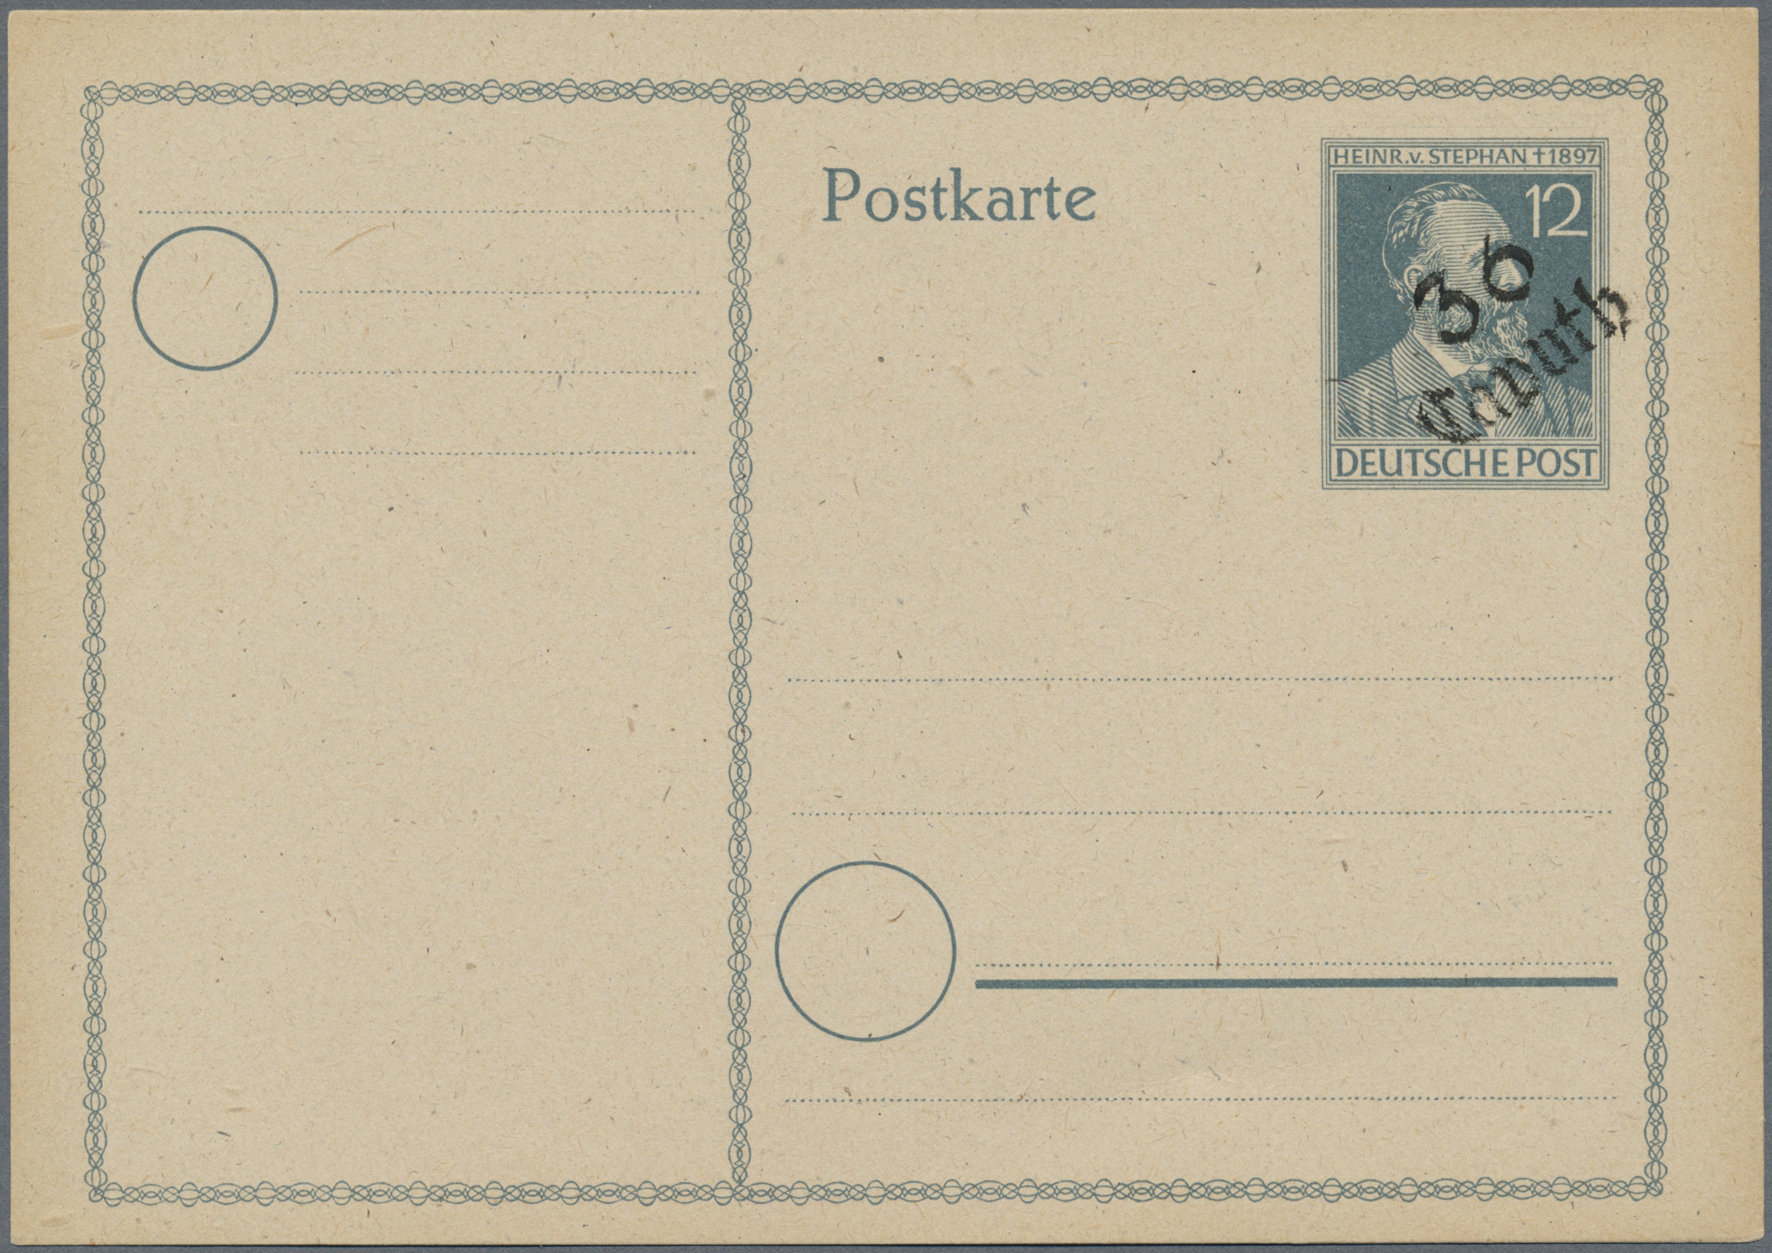 Lot 24254A - Sowjetische Zone - Bezirkshandstempel - VII - Bez. 36 (Potsdam)  -  Auktionshaus Christoph Gärtner GmbH & Co. KG Single lots Germany + Picture Postcards. Auction #39 Day 5